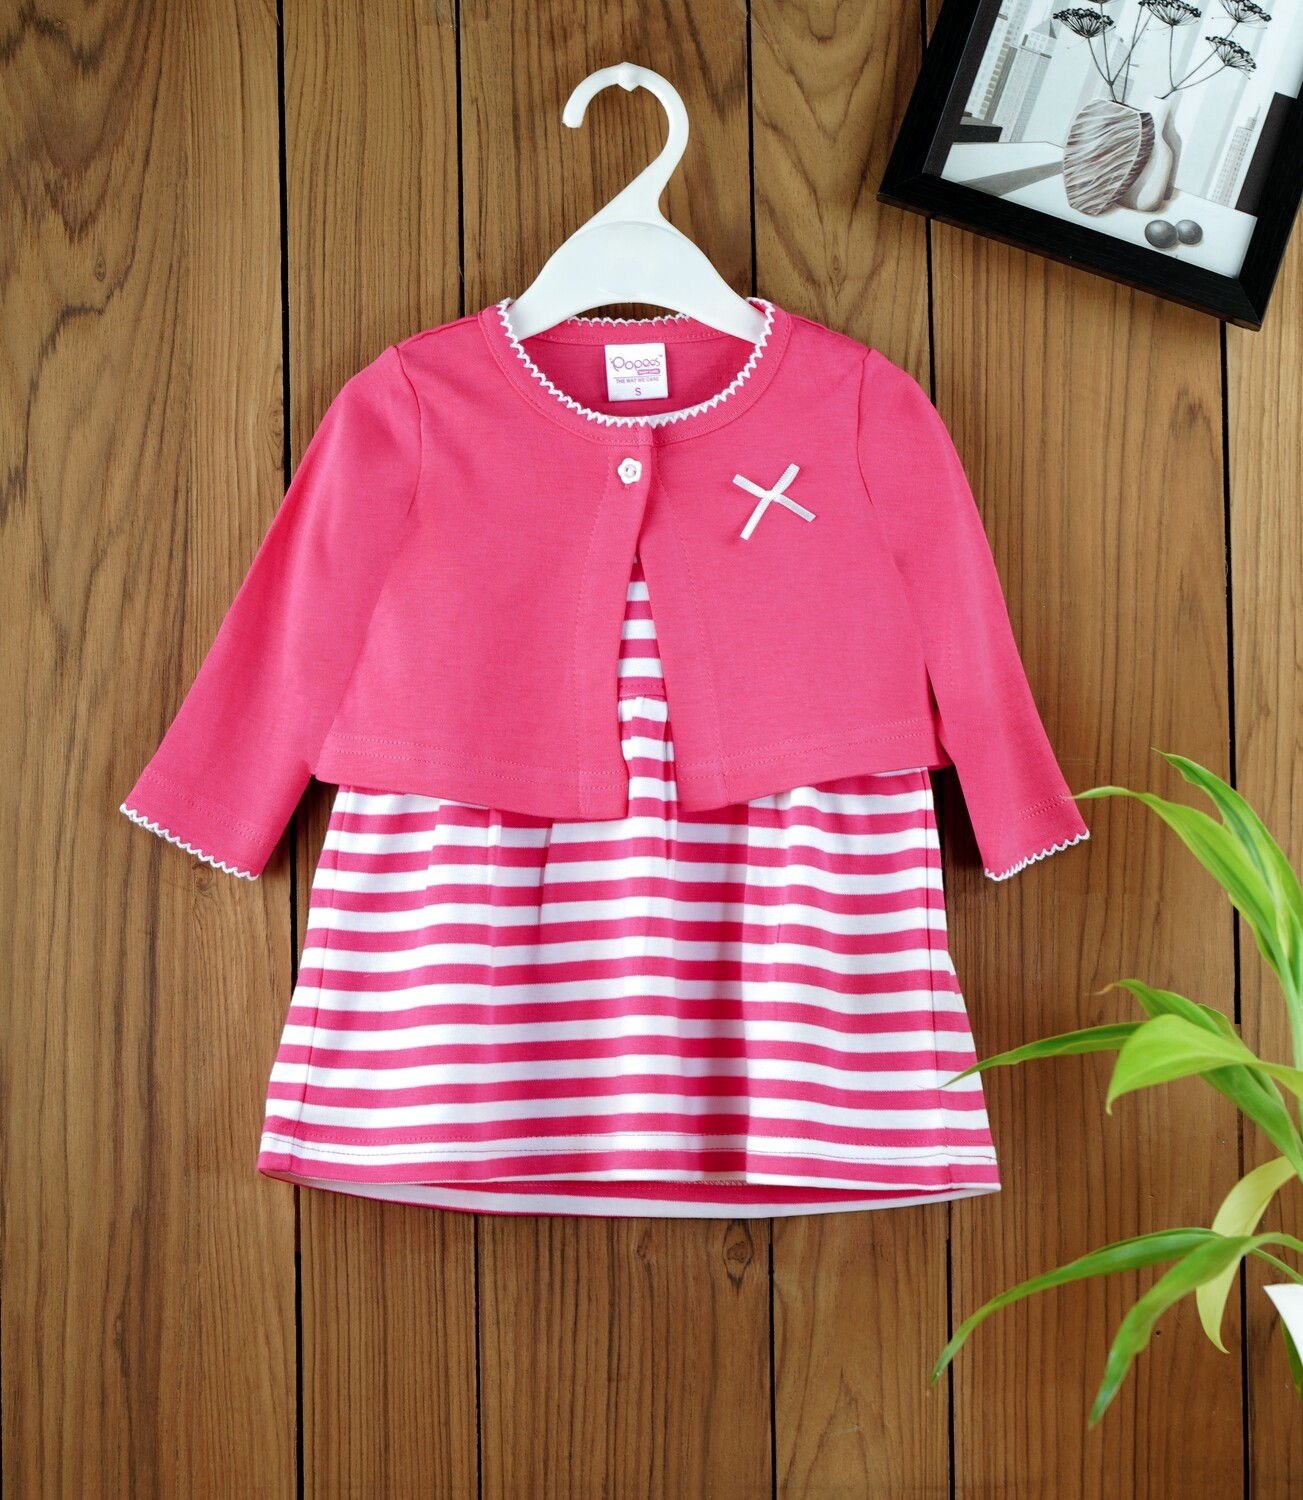 Dokie Fuchsia Striped Frock with Full Sleeves Shrug and Bloomer